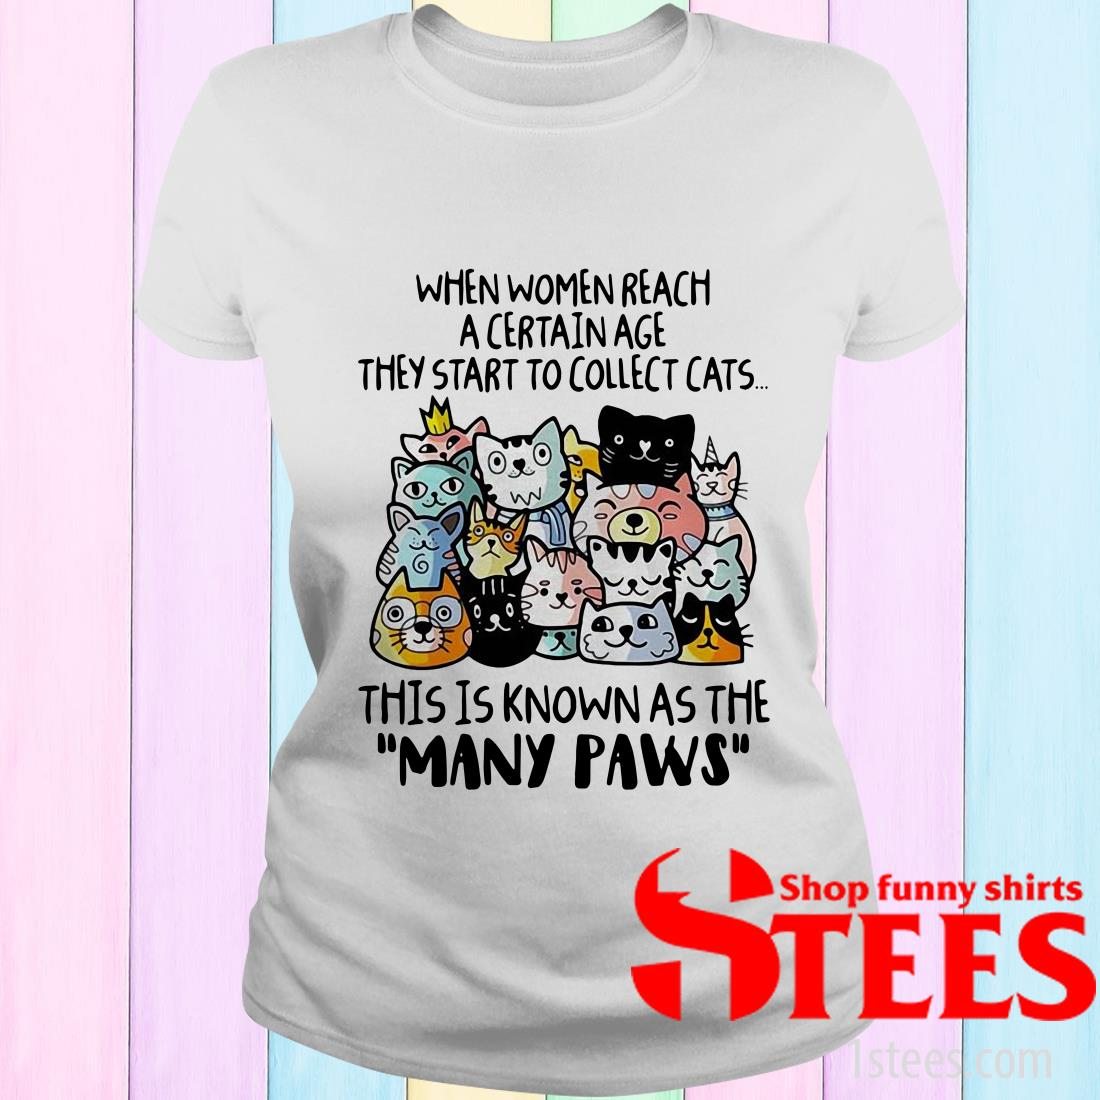 When Women Reach A Certain Age They Start To Collect Cats Shirt